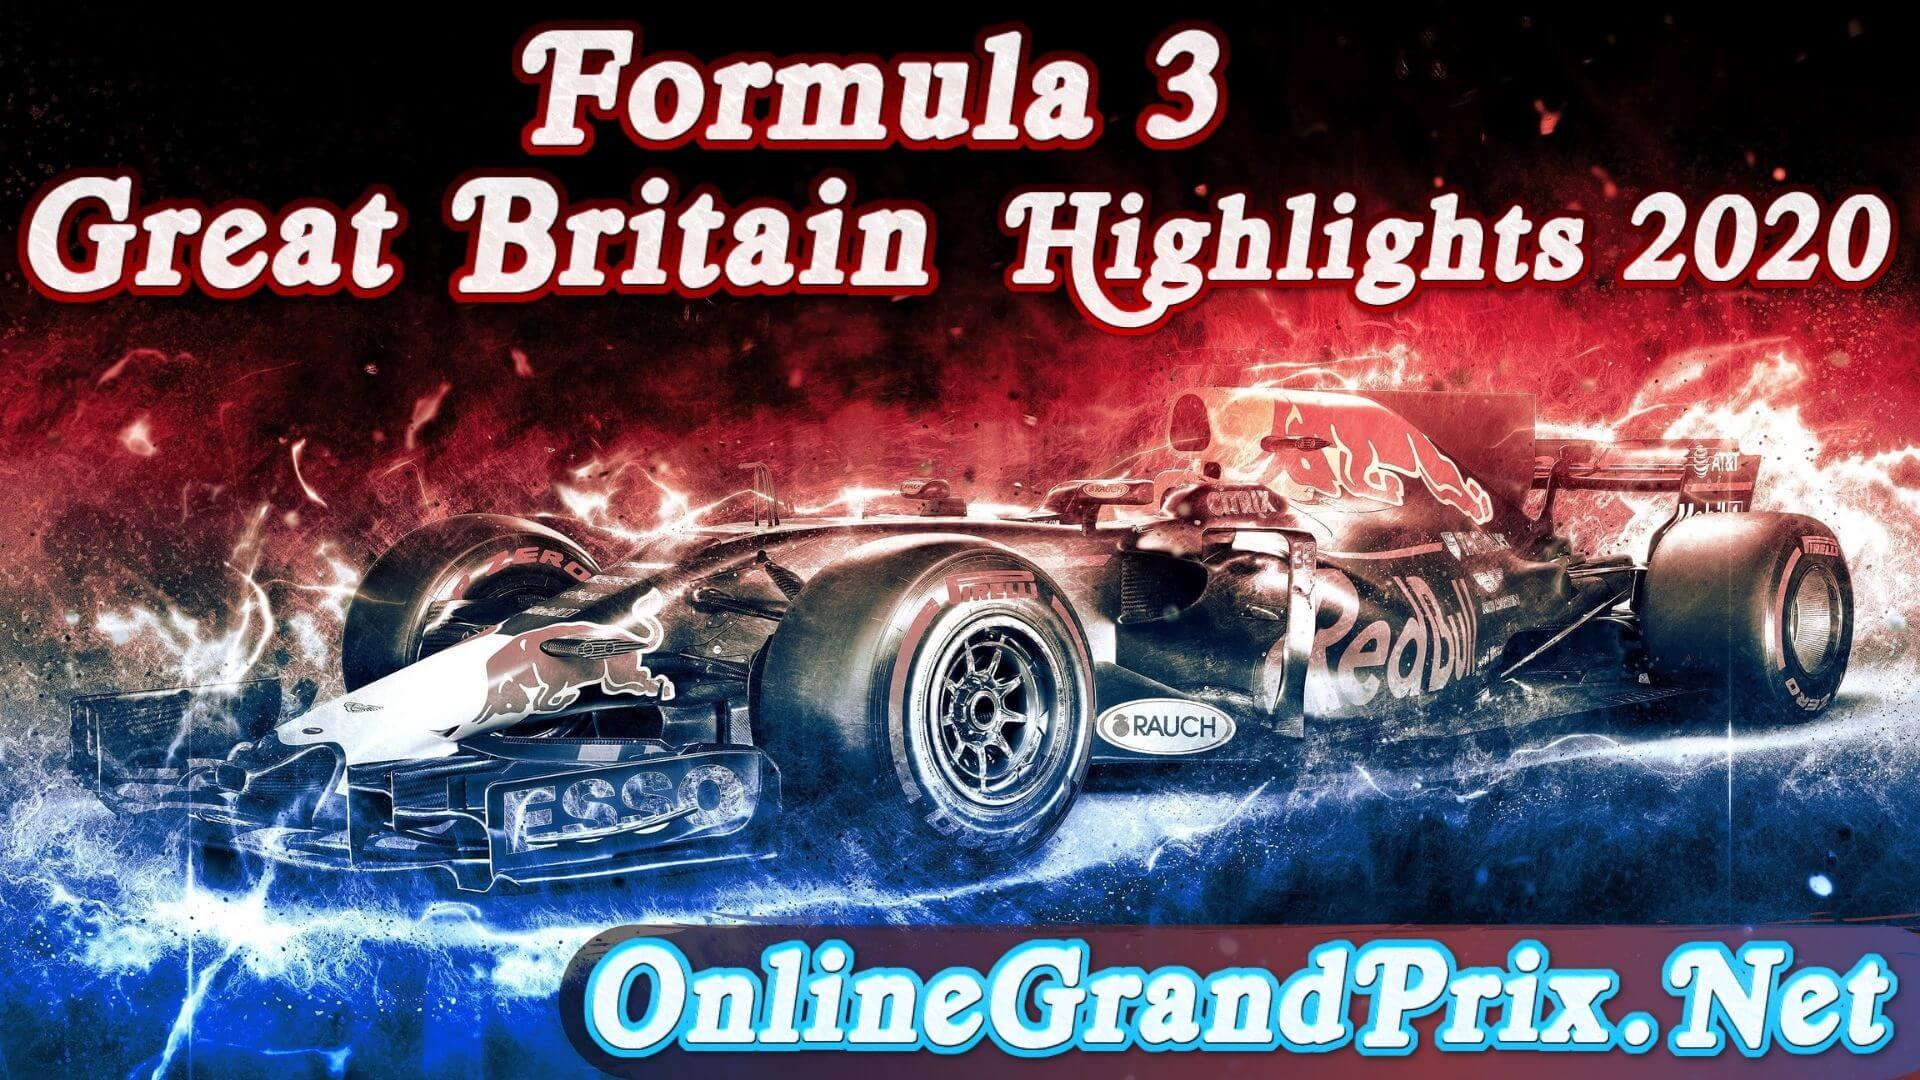 Great Britain GP F3 Highlights 2020